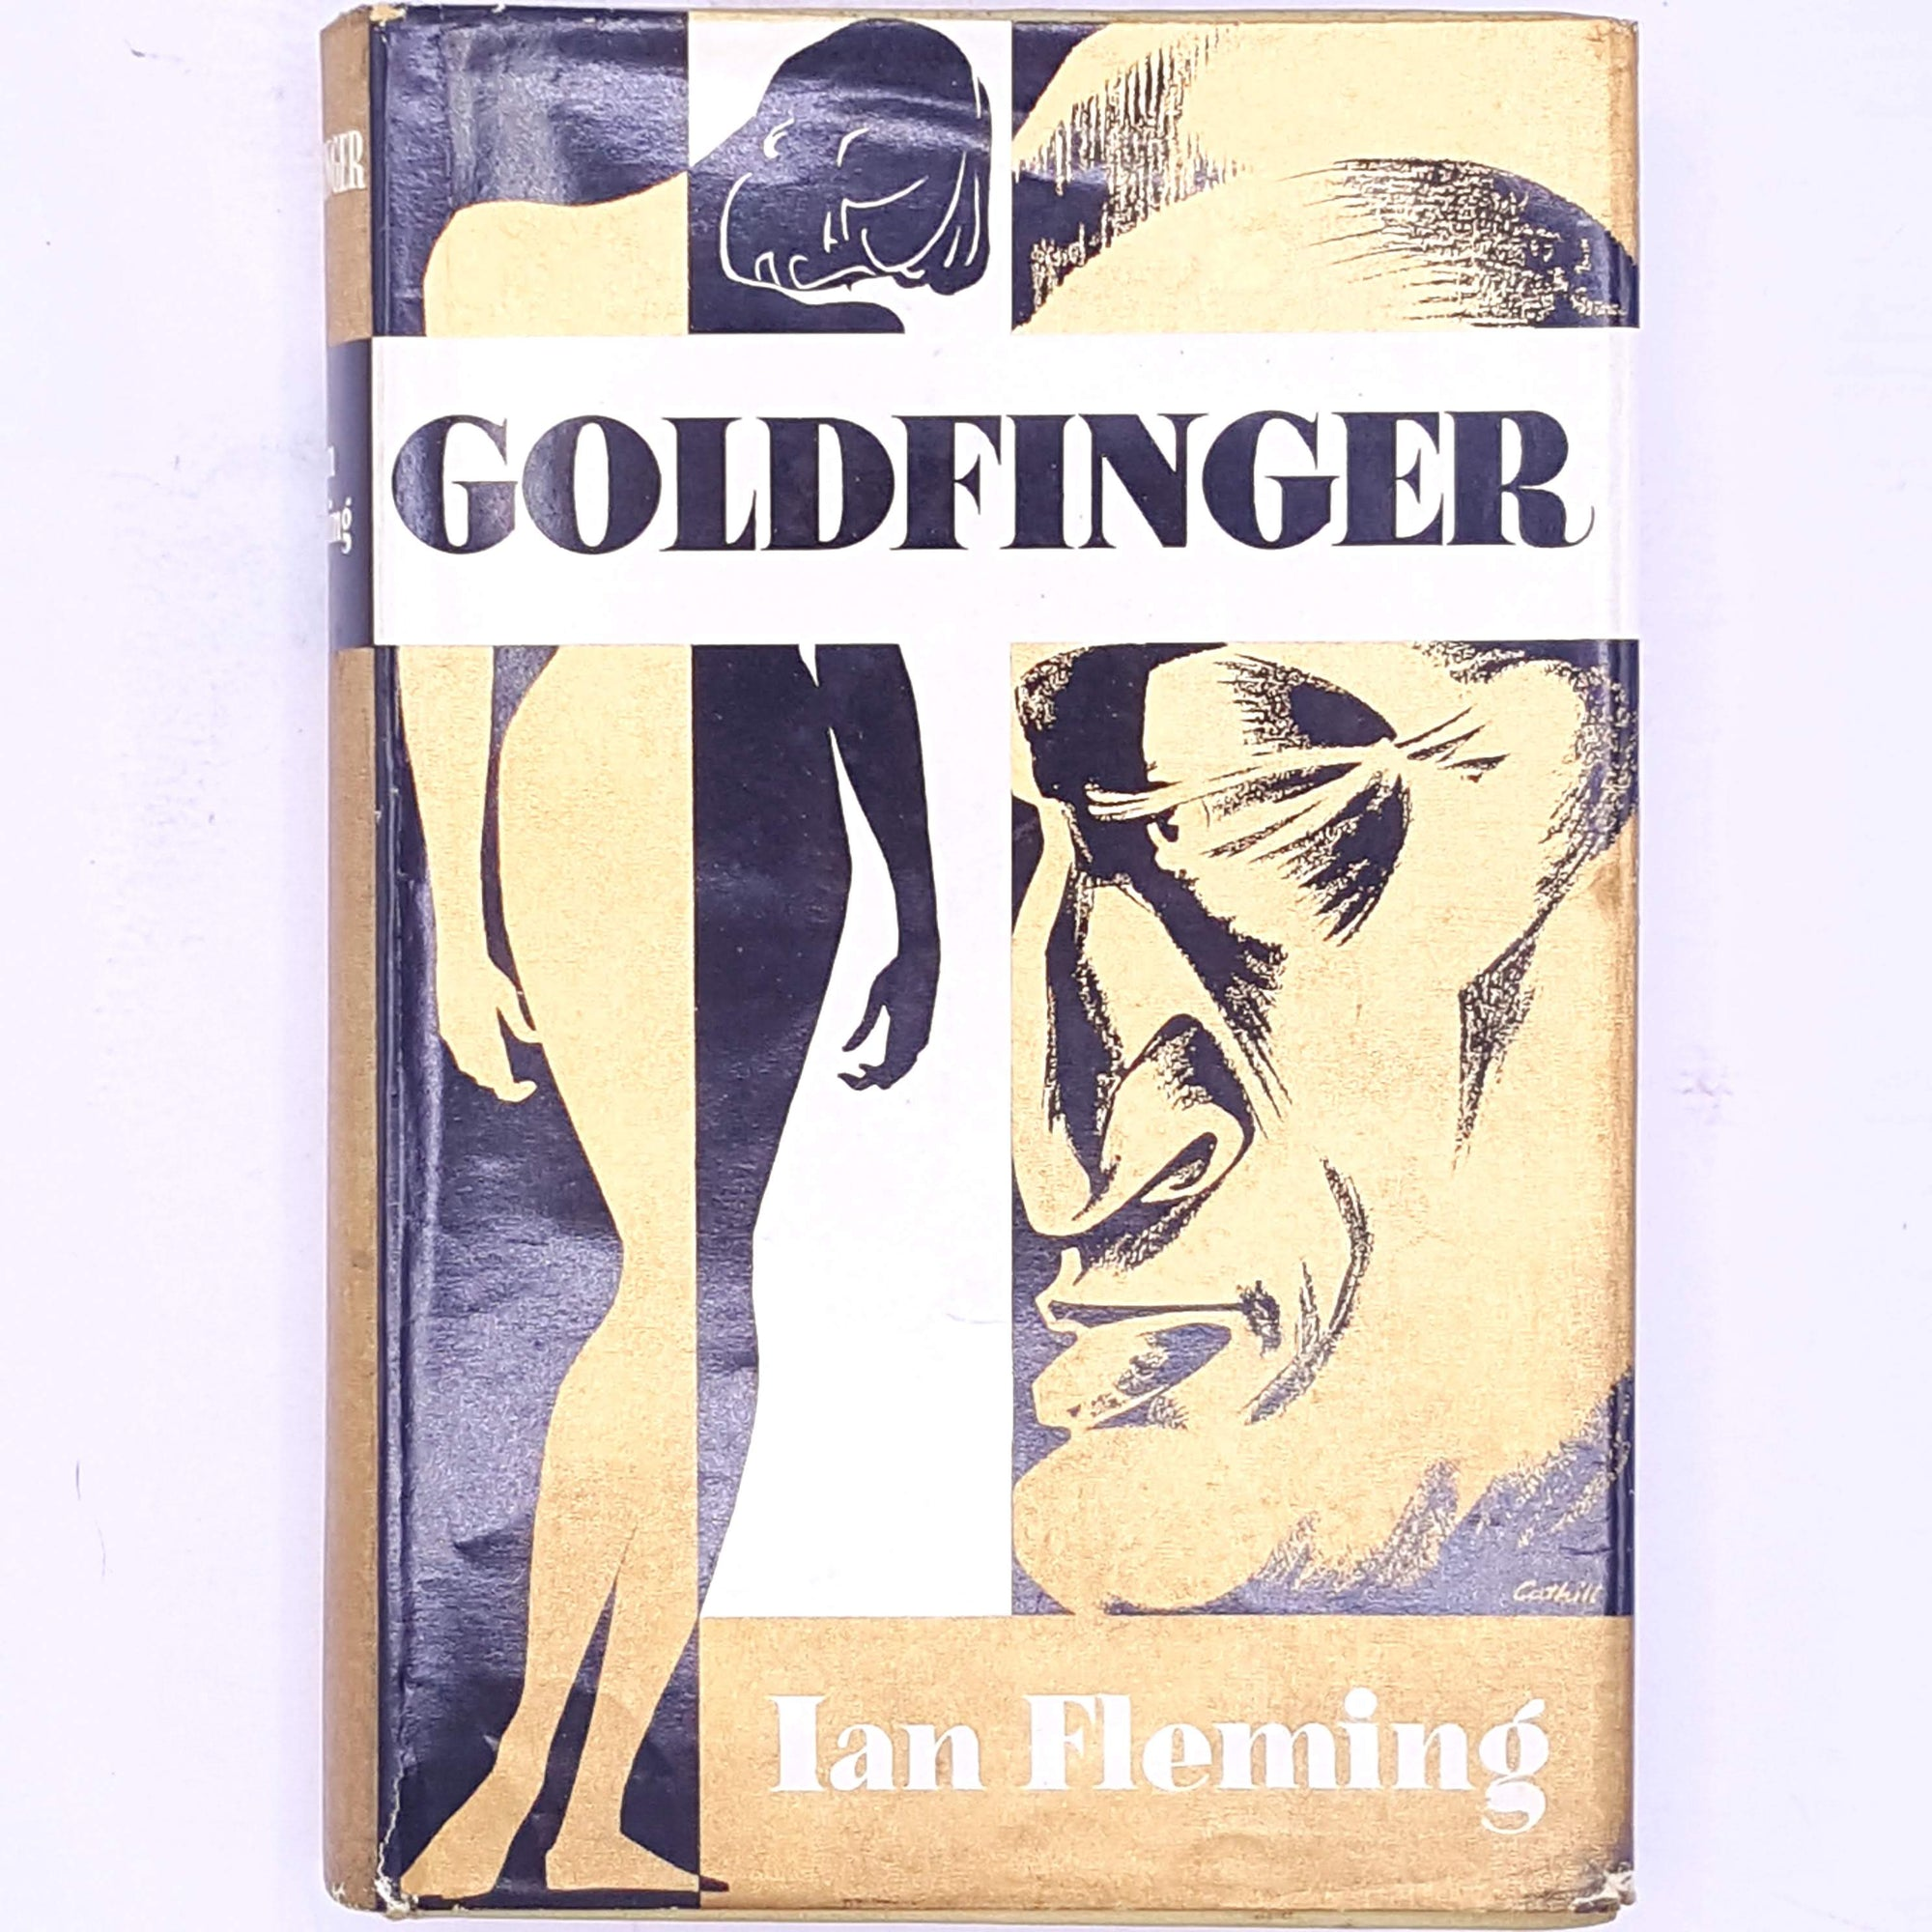 Goldfinger-James-Bond-country-house-library-007-secret-agent-old-classic-vintage-decorative-spy-ian-fleming-mystery-books-patterned-antique-thrift-